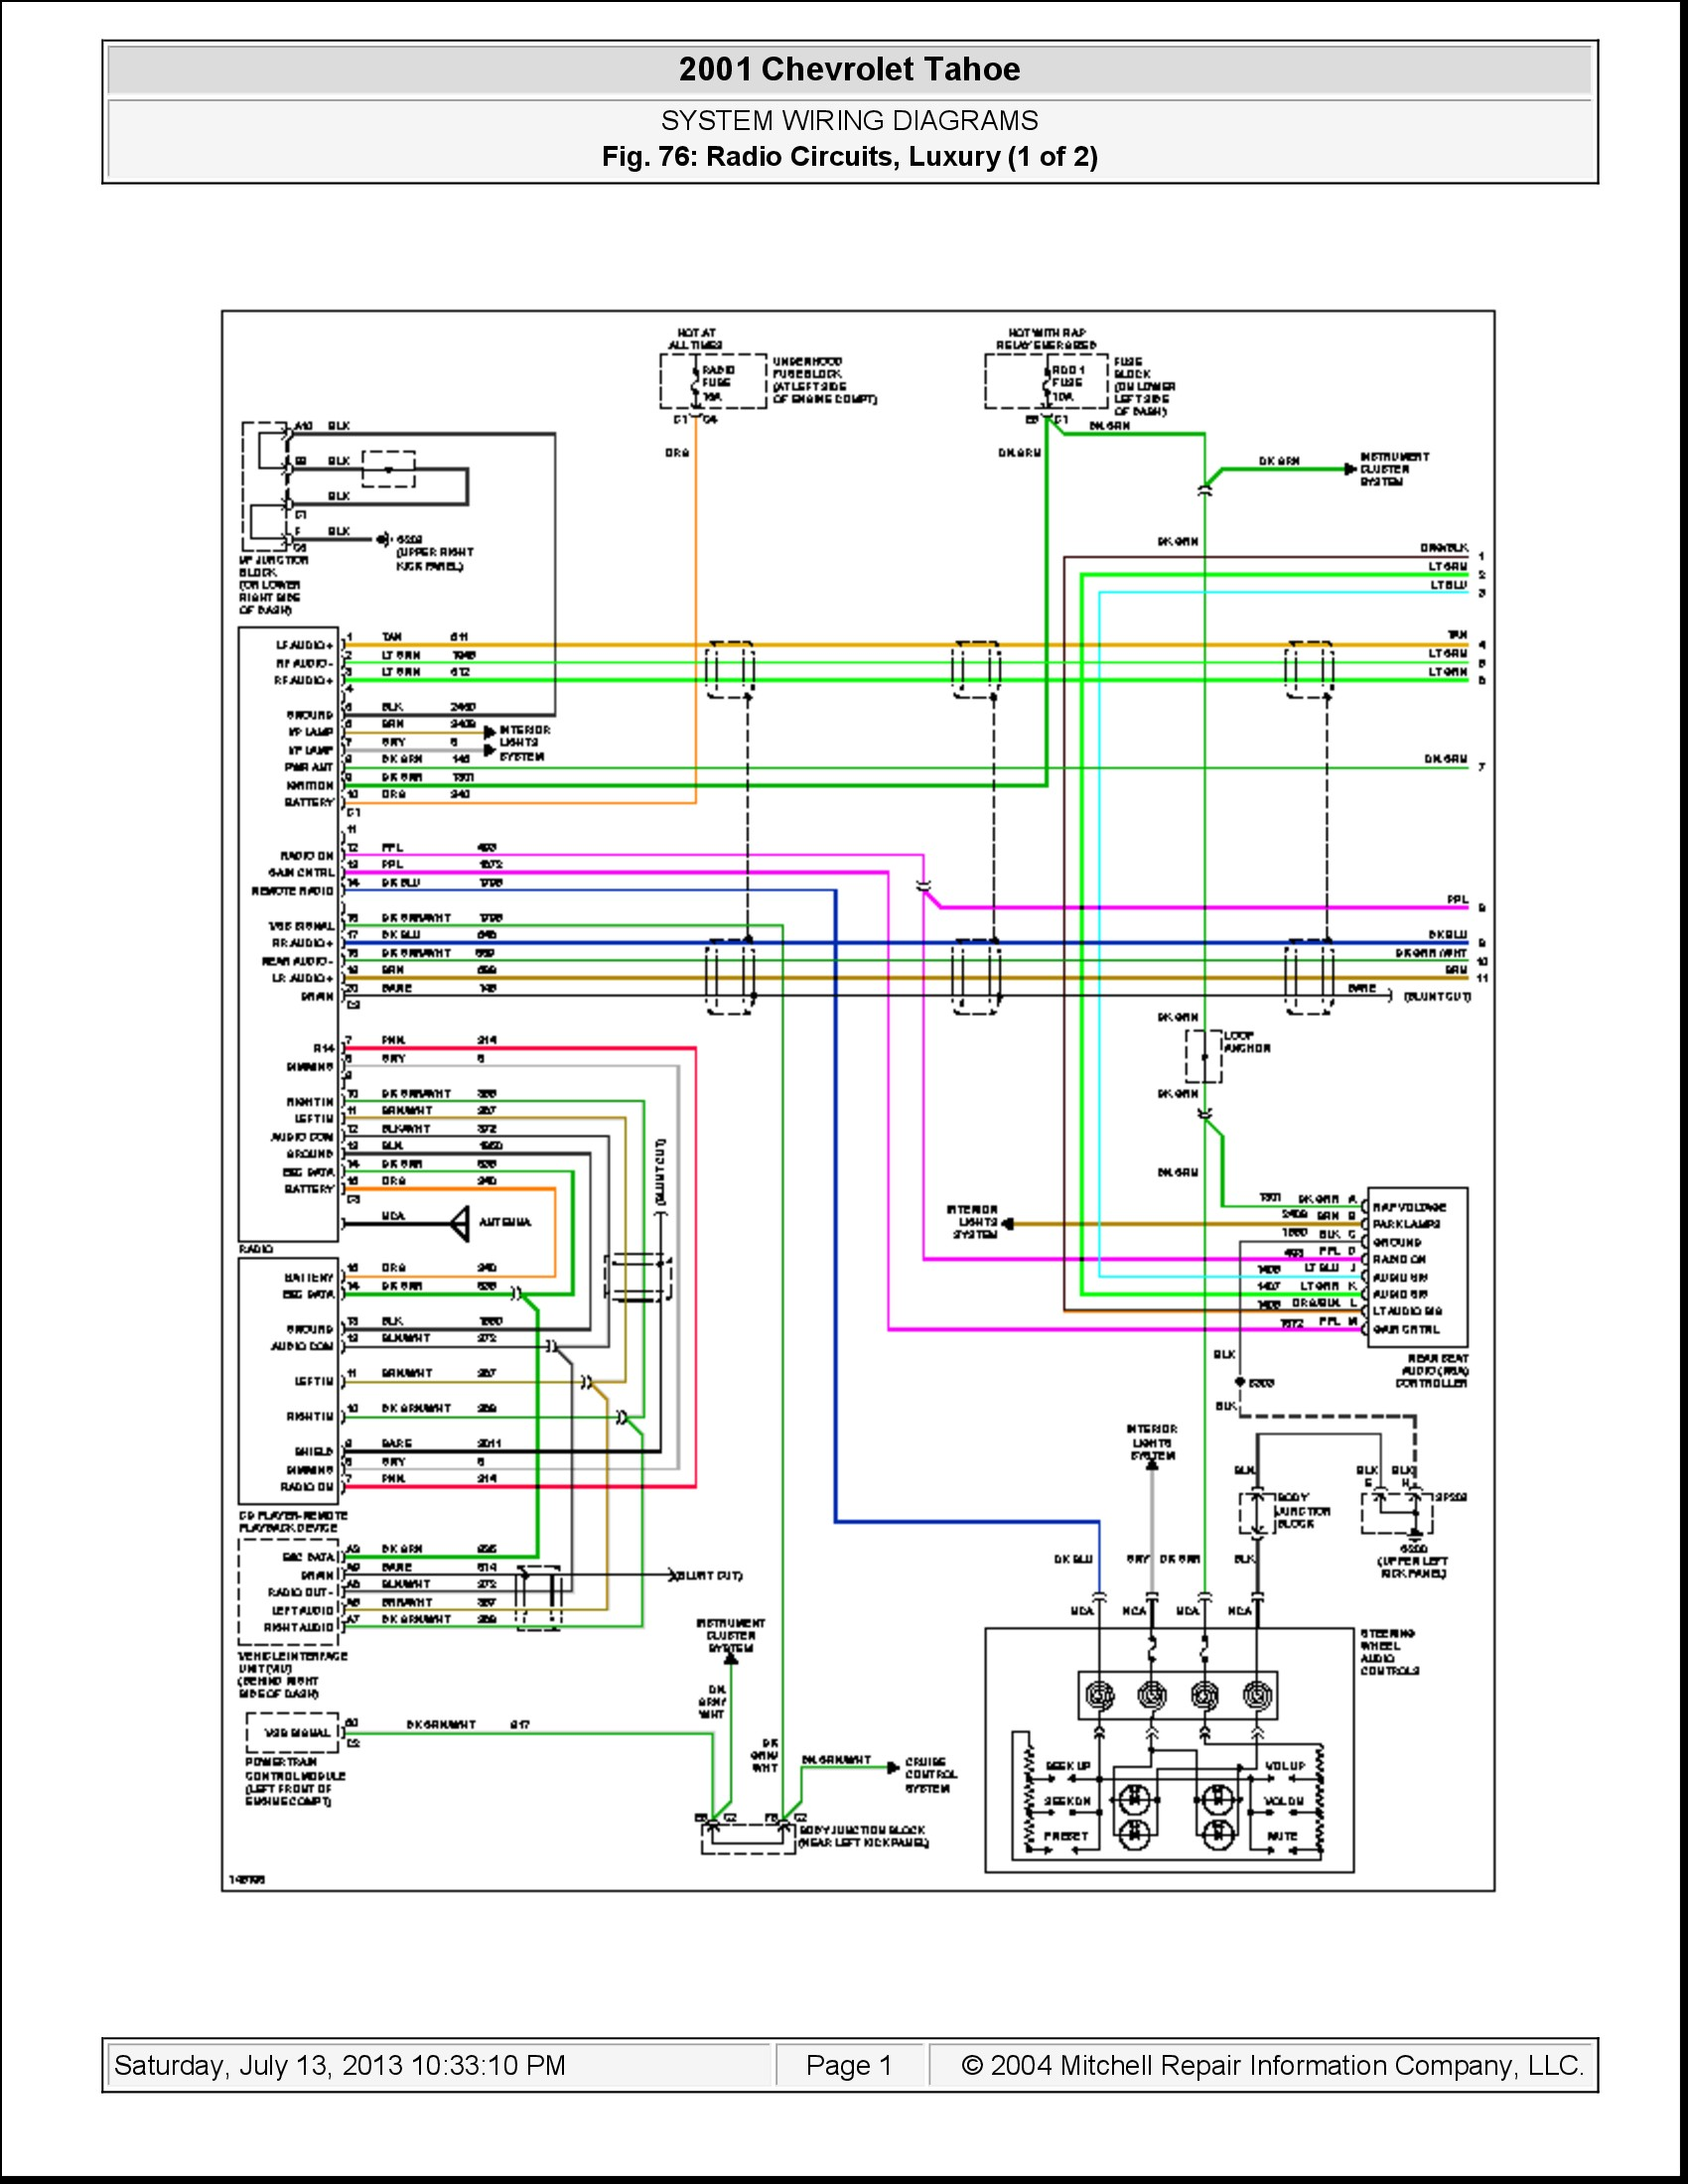 1998 toyota Camry Wiring Diagram Stunning toyota Camry Stereo Wiring Diagram  Ideas Everything You Of 1998